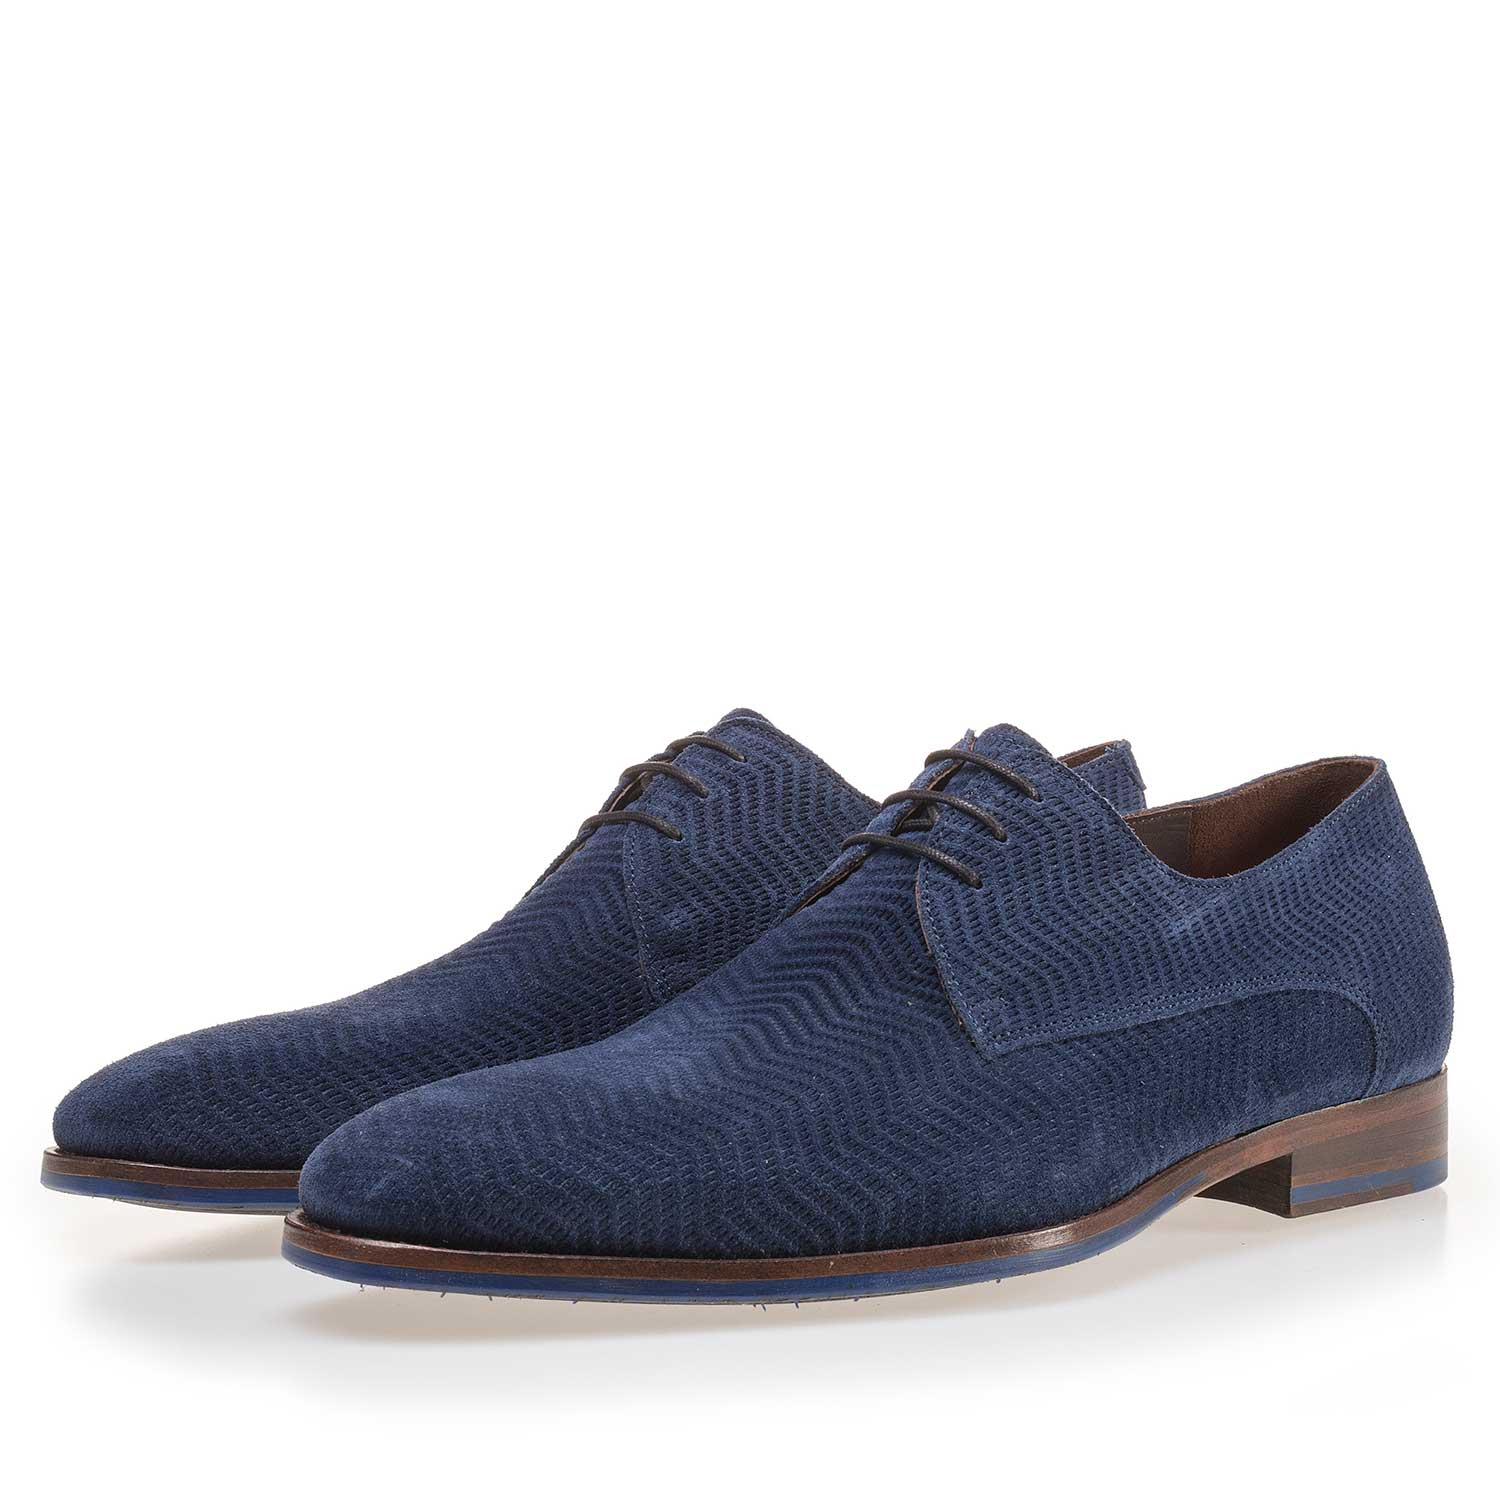 14146/03 - Blue suede leather lace shoe